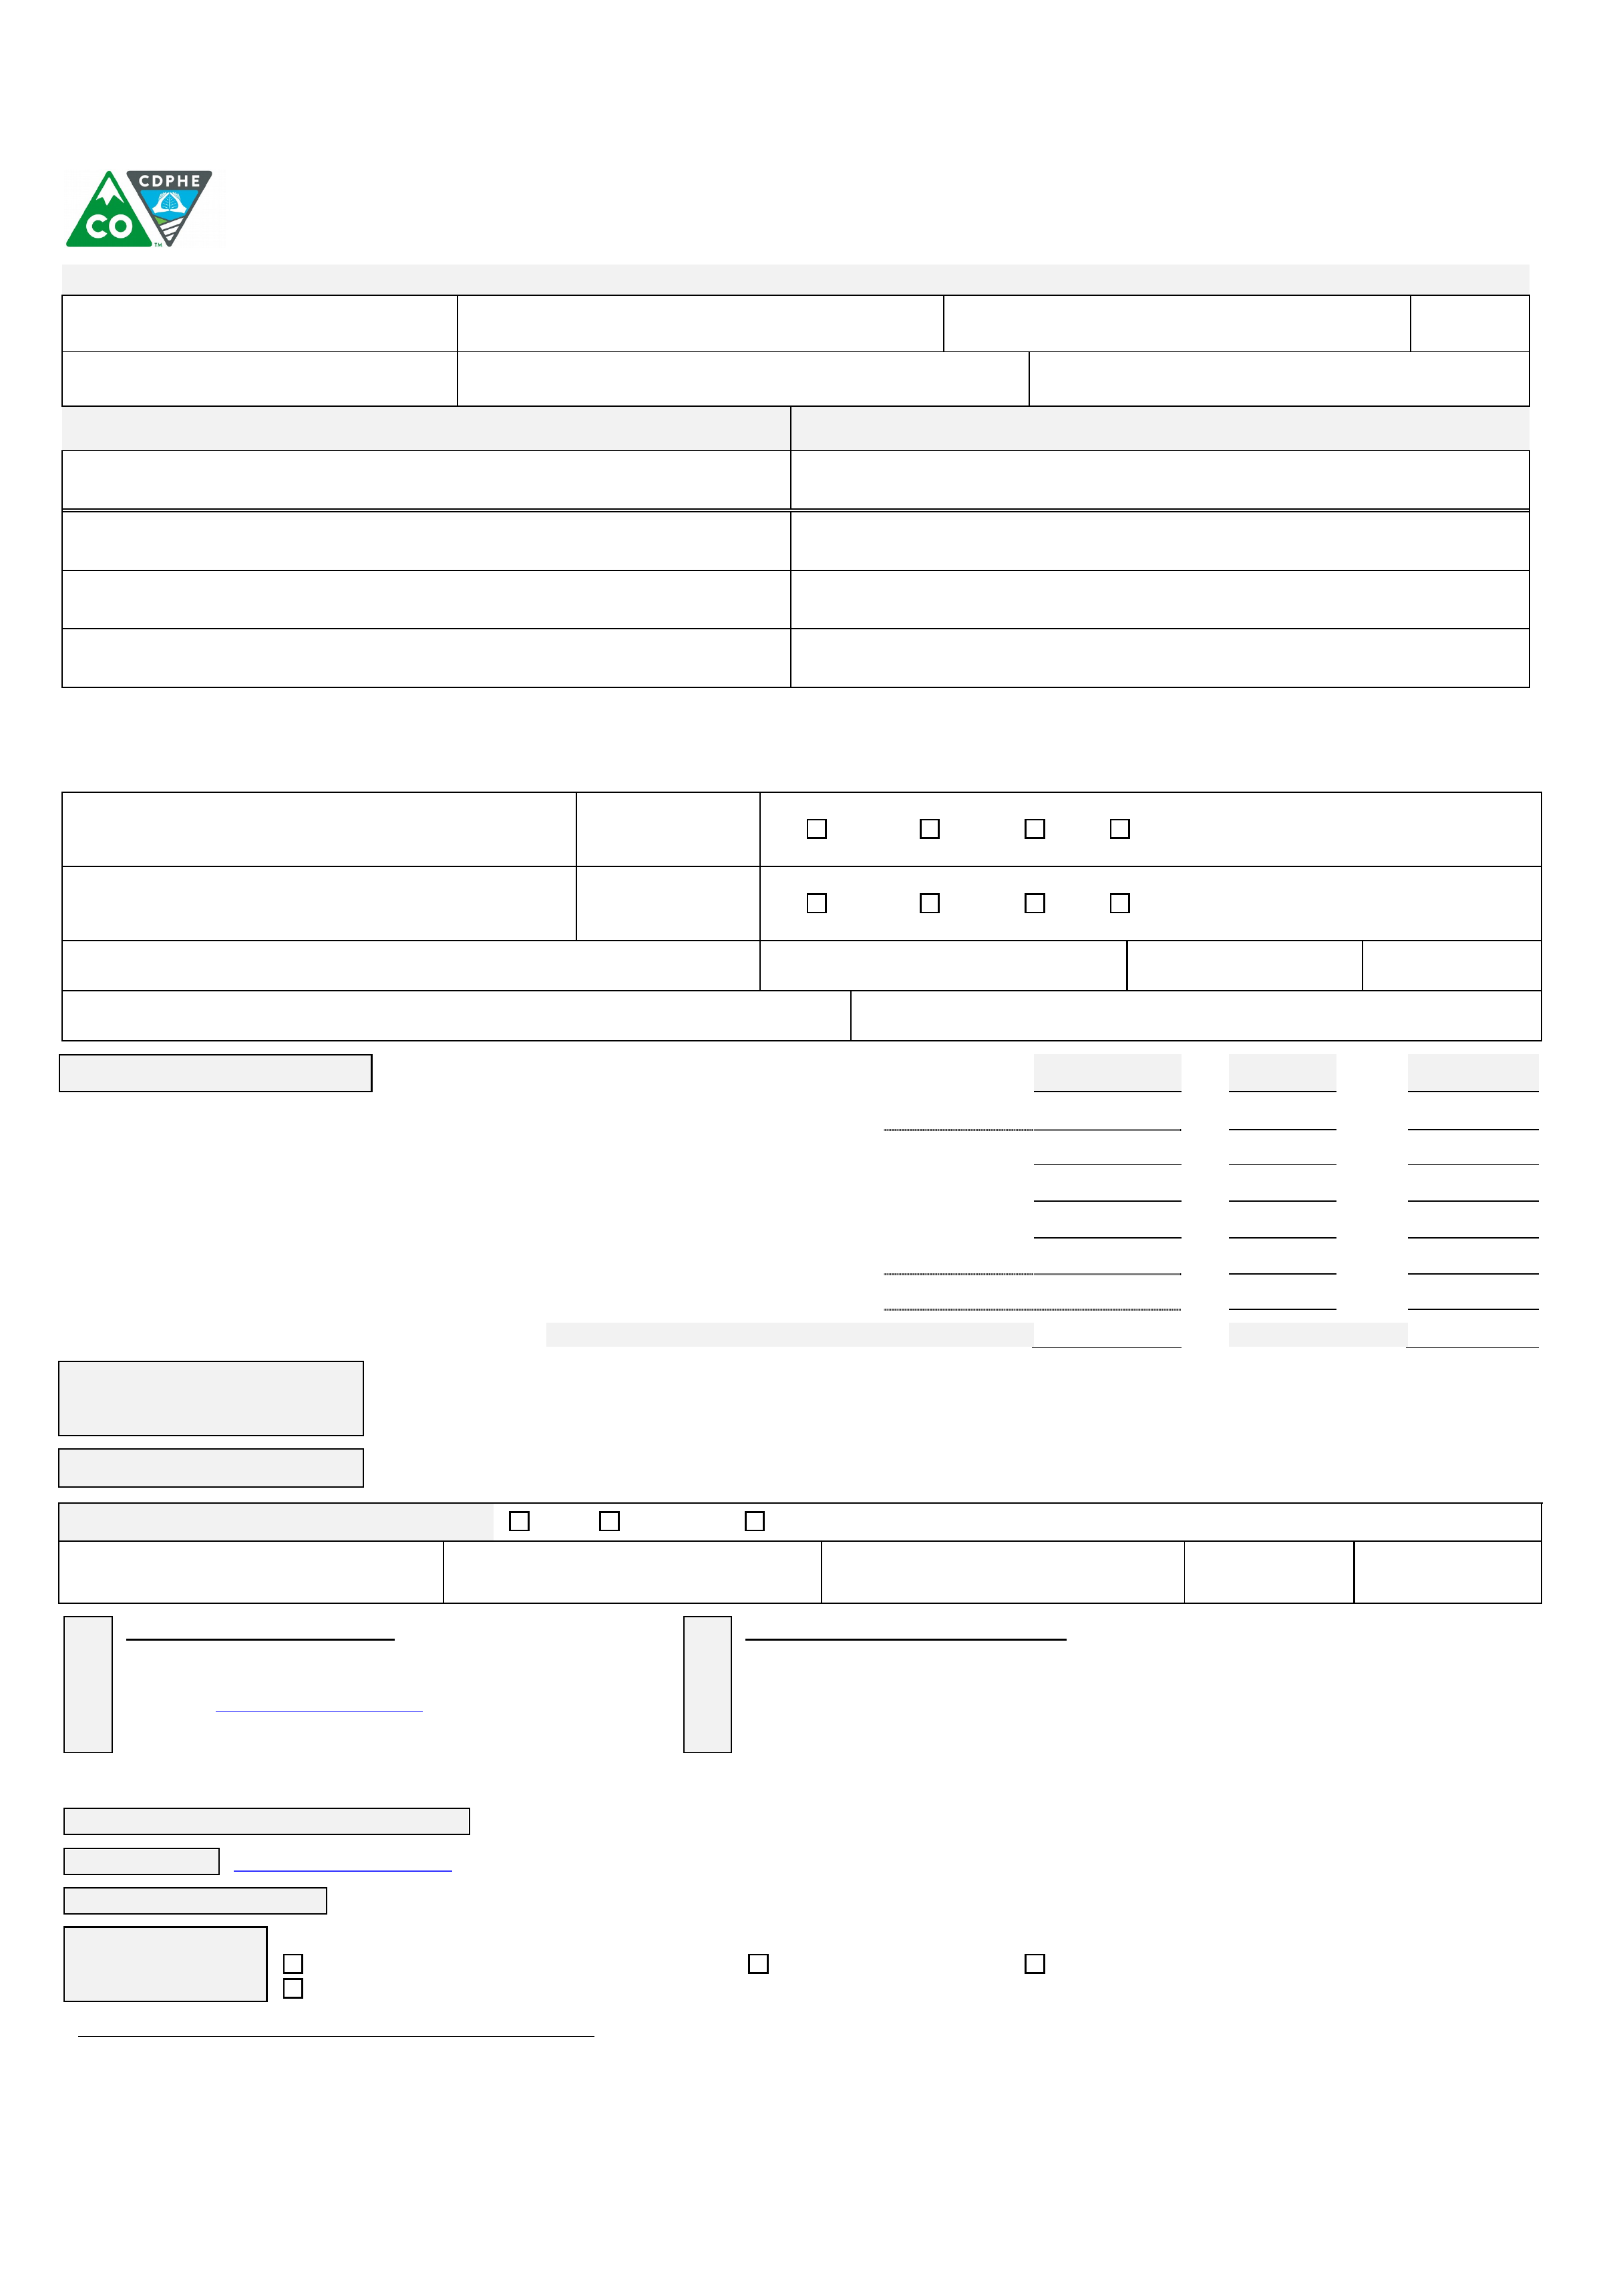 Birth certificate change or correct form colorado free download xflitez Gallery